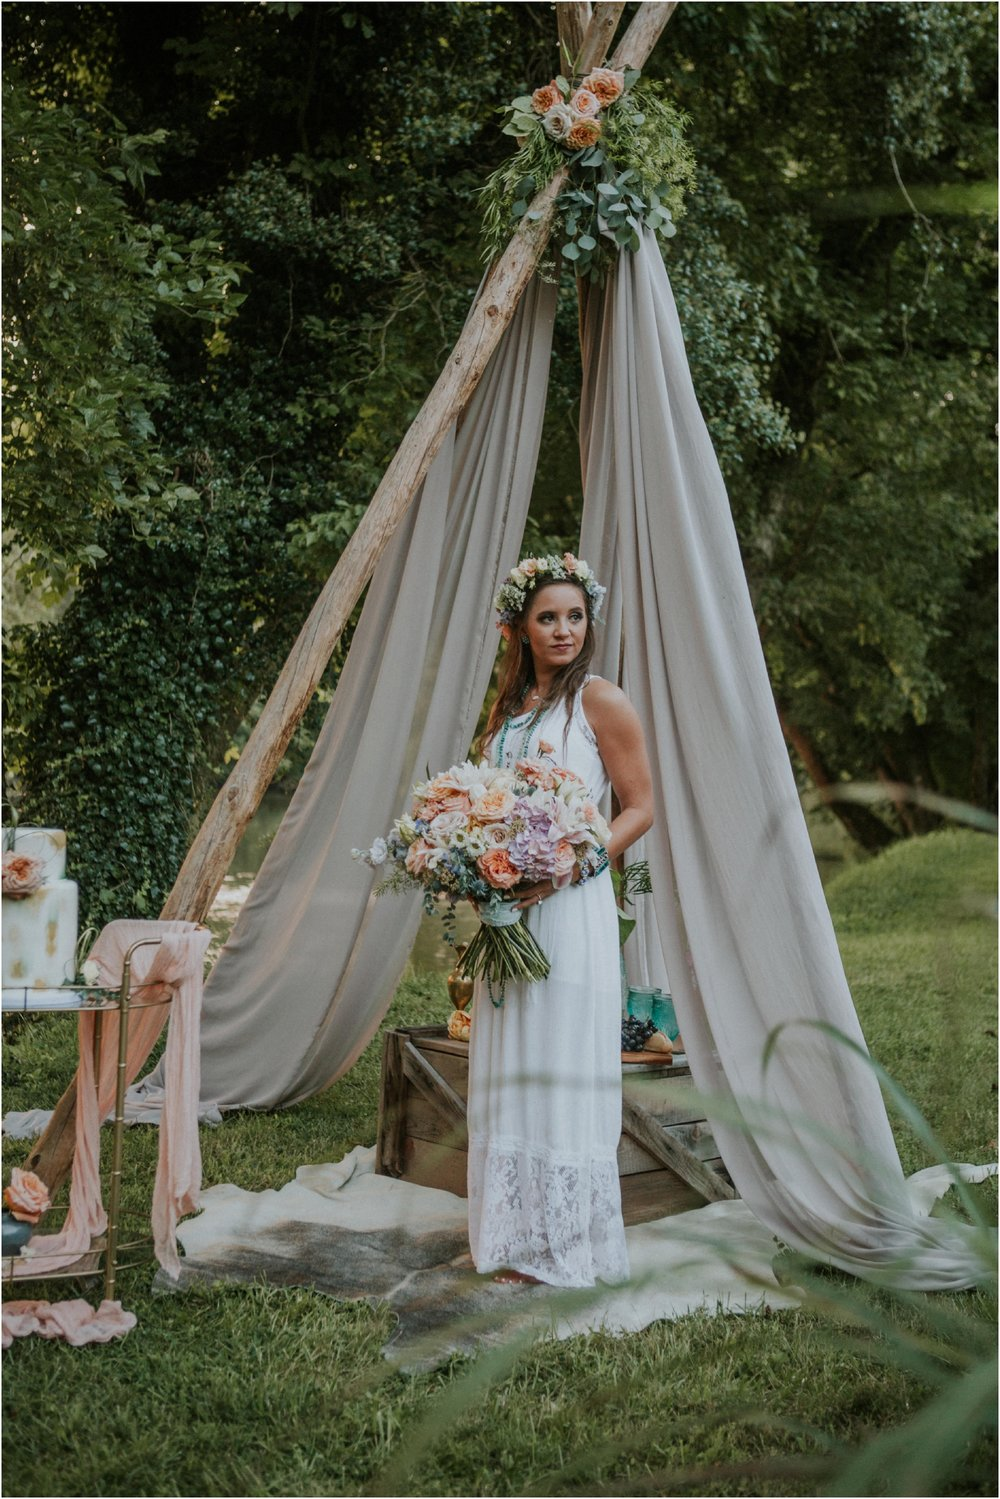 homestead-on-the-holston-hiltons-virginia-bohemian-canoe-styled-shoot-northeast-tennessee-elopement-wild-free-spirit_0049.jpg